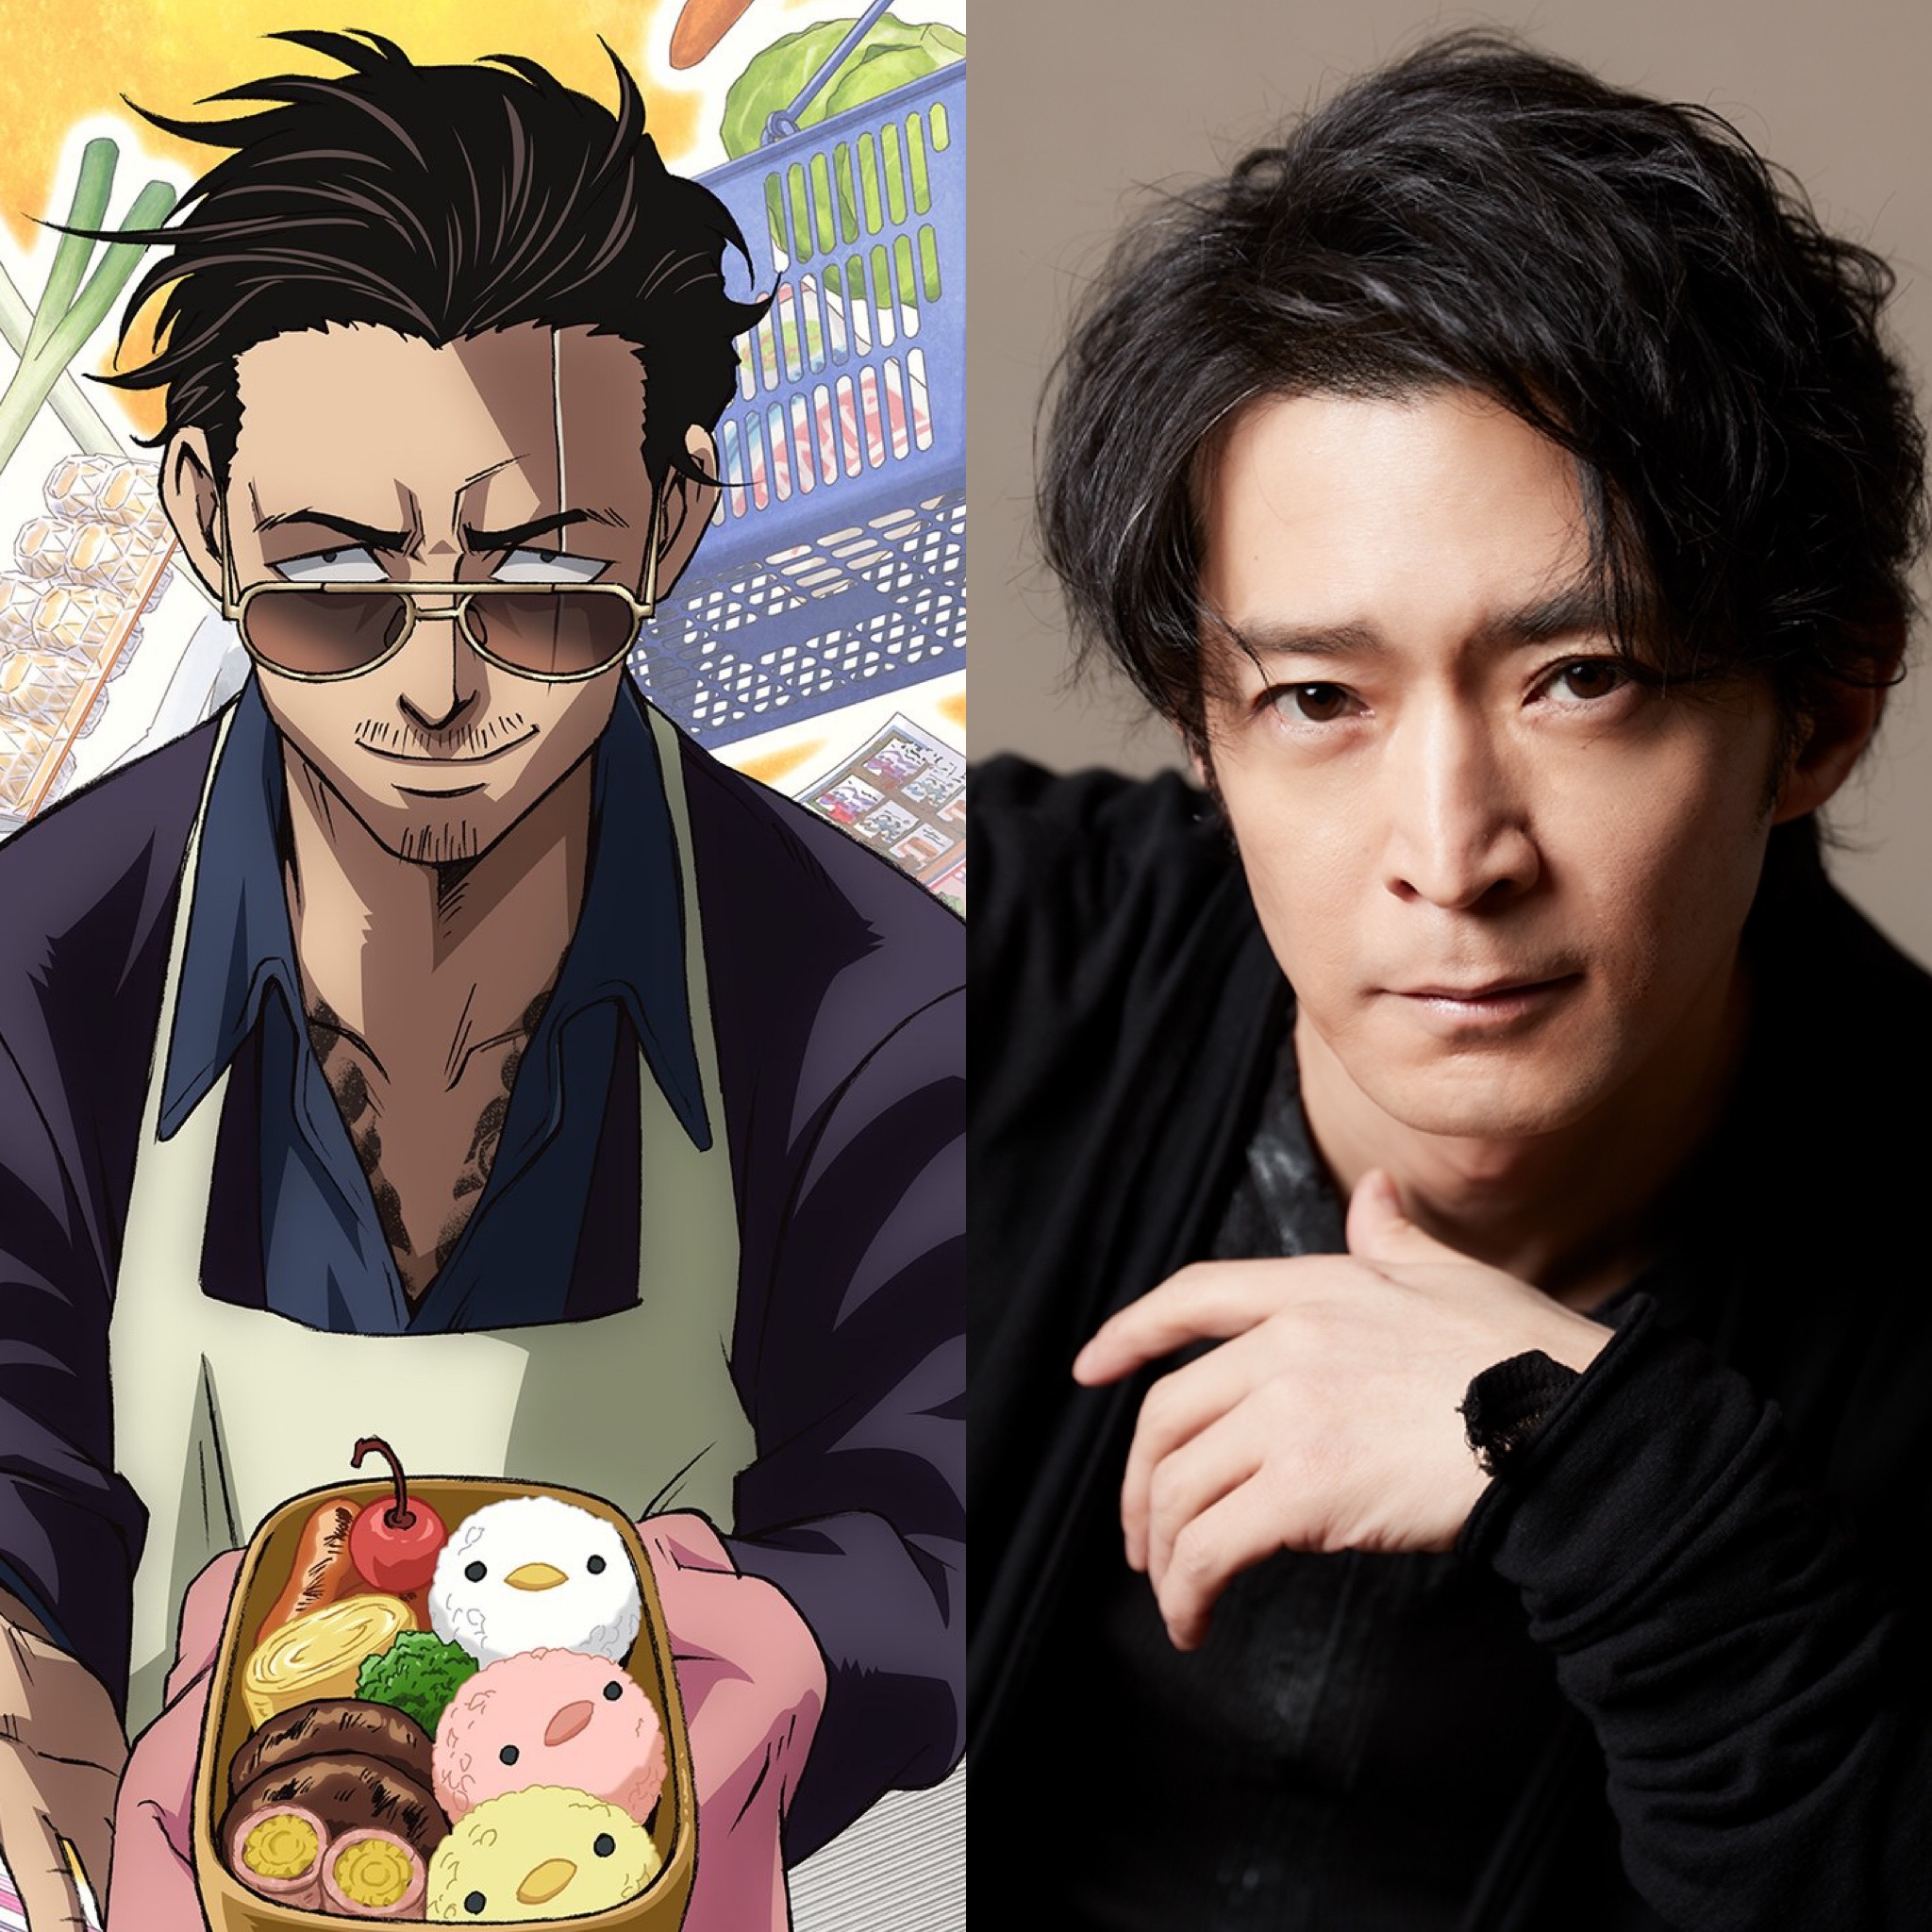 Anime adaptation for The Way of the Househusband announced, Kenjiro Tsuda to voice lead role